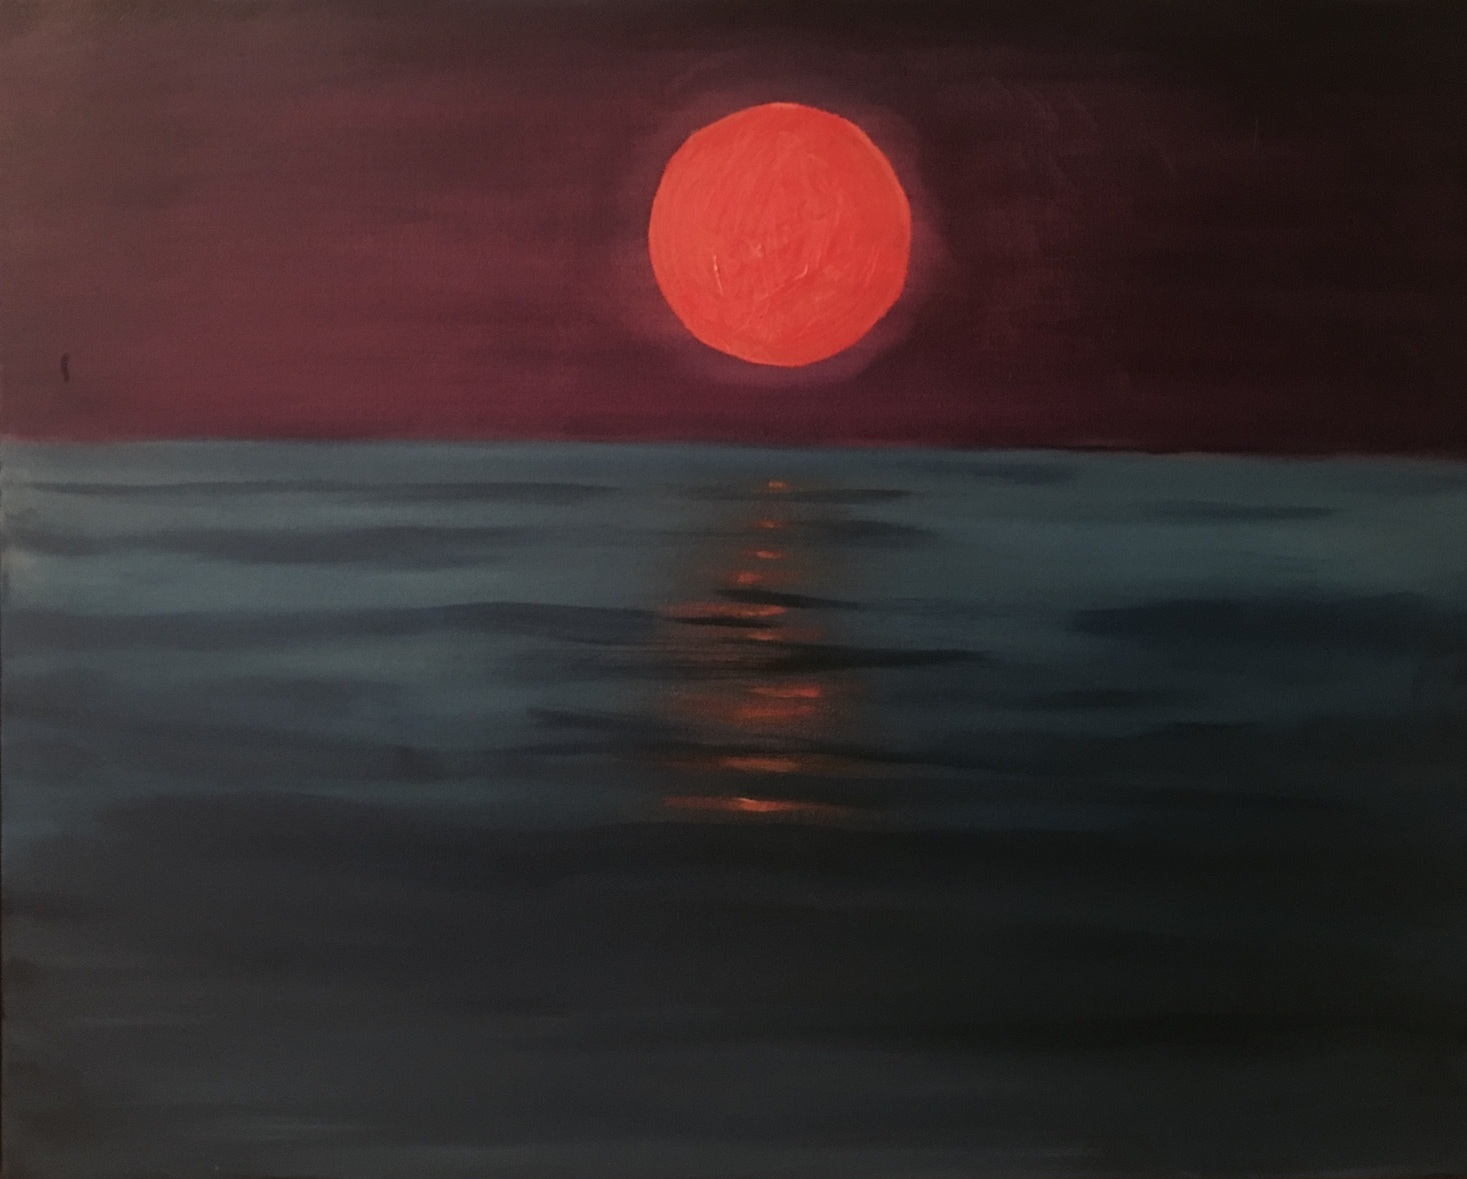 Marmalade Moon - Oil on Canvas24 x 30Now residing in Port Chester, NY